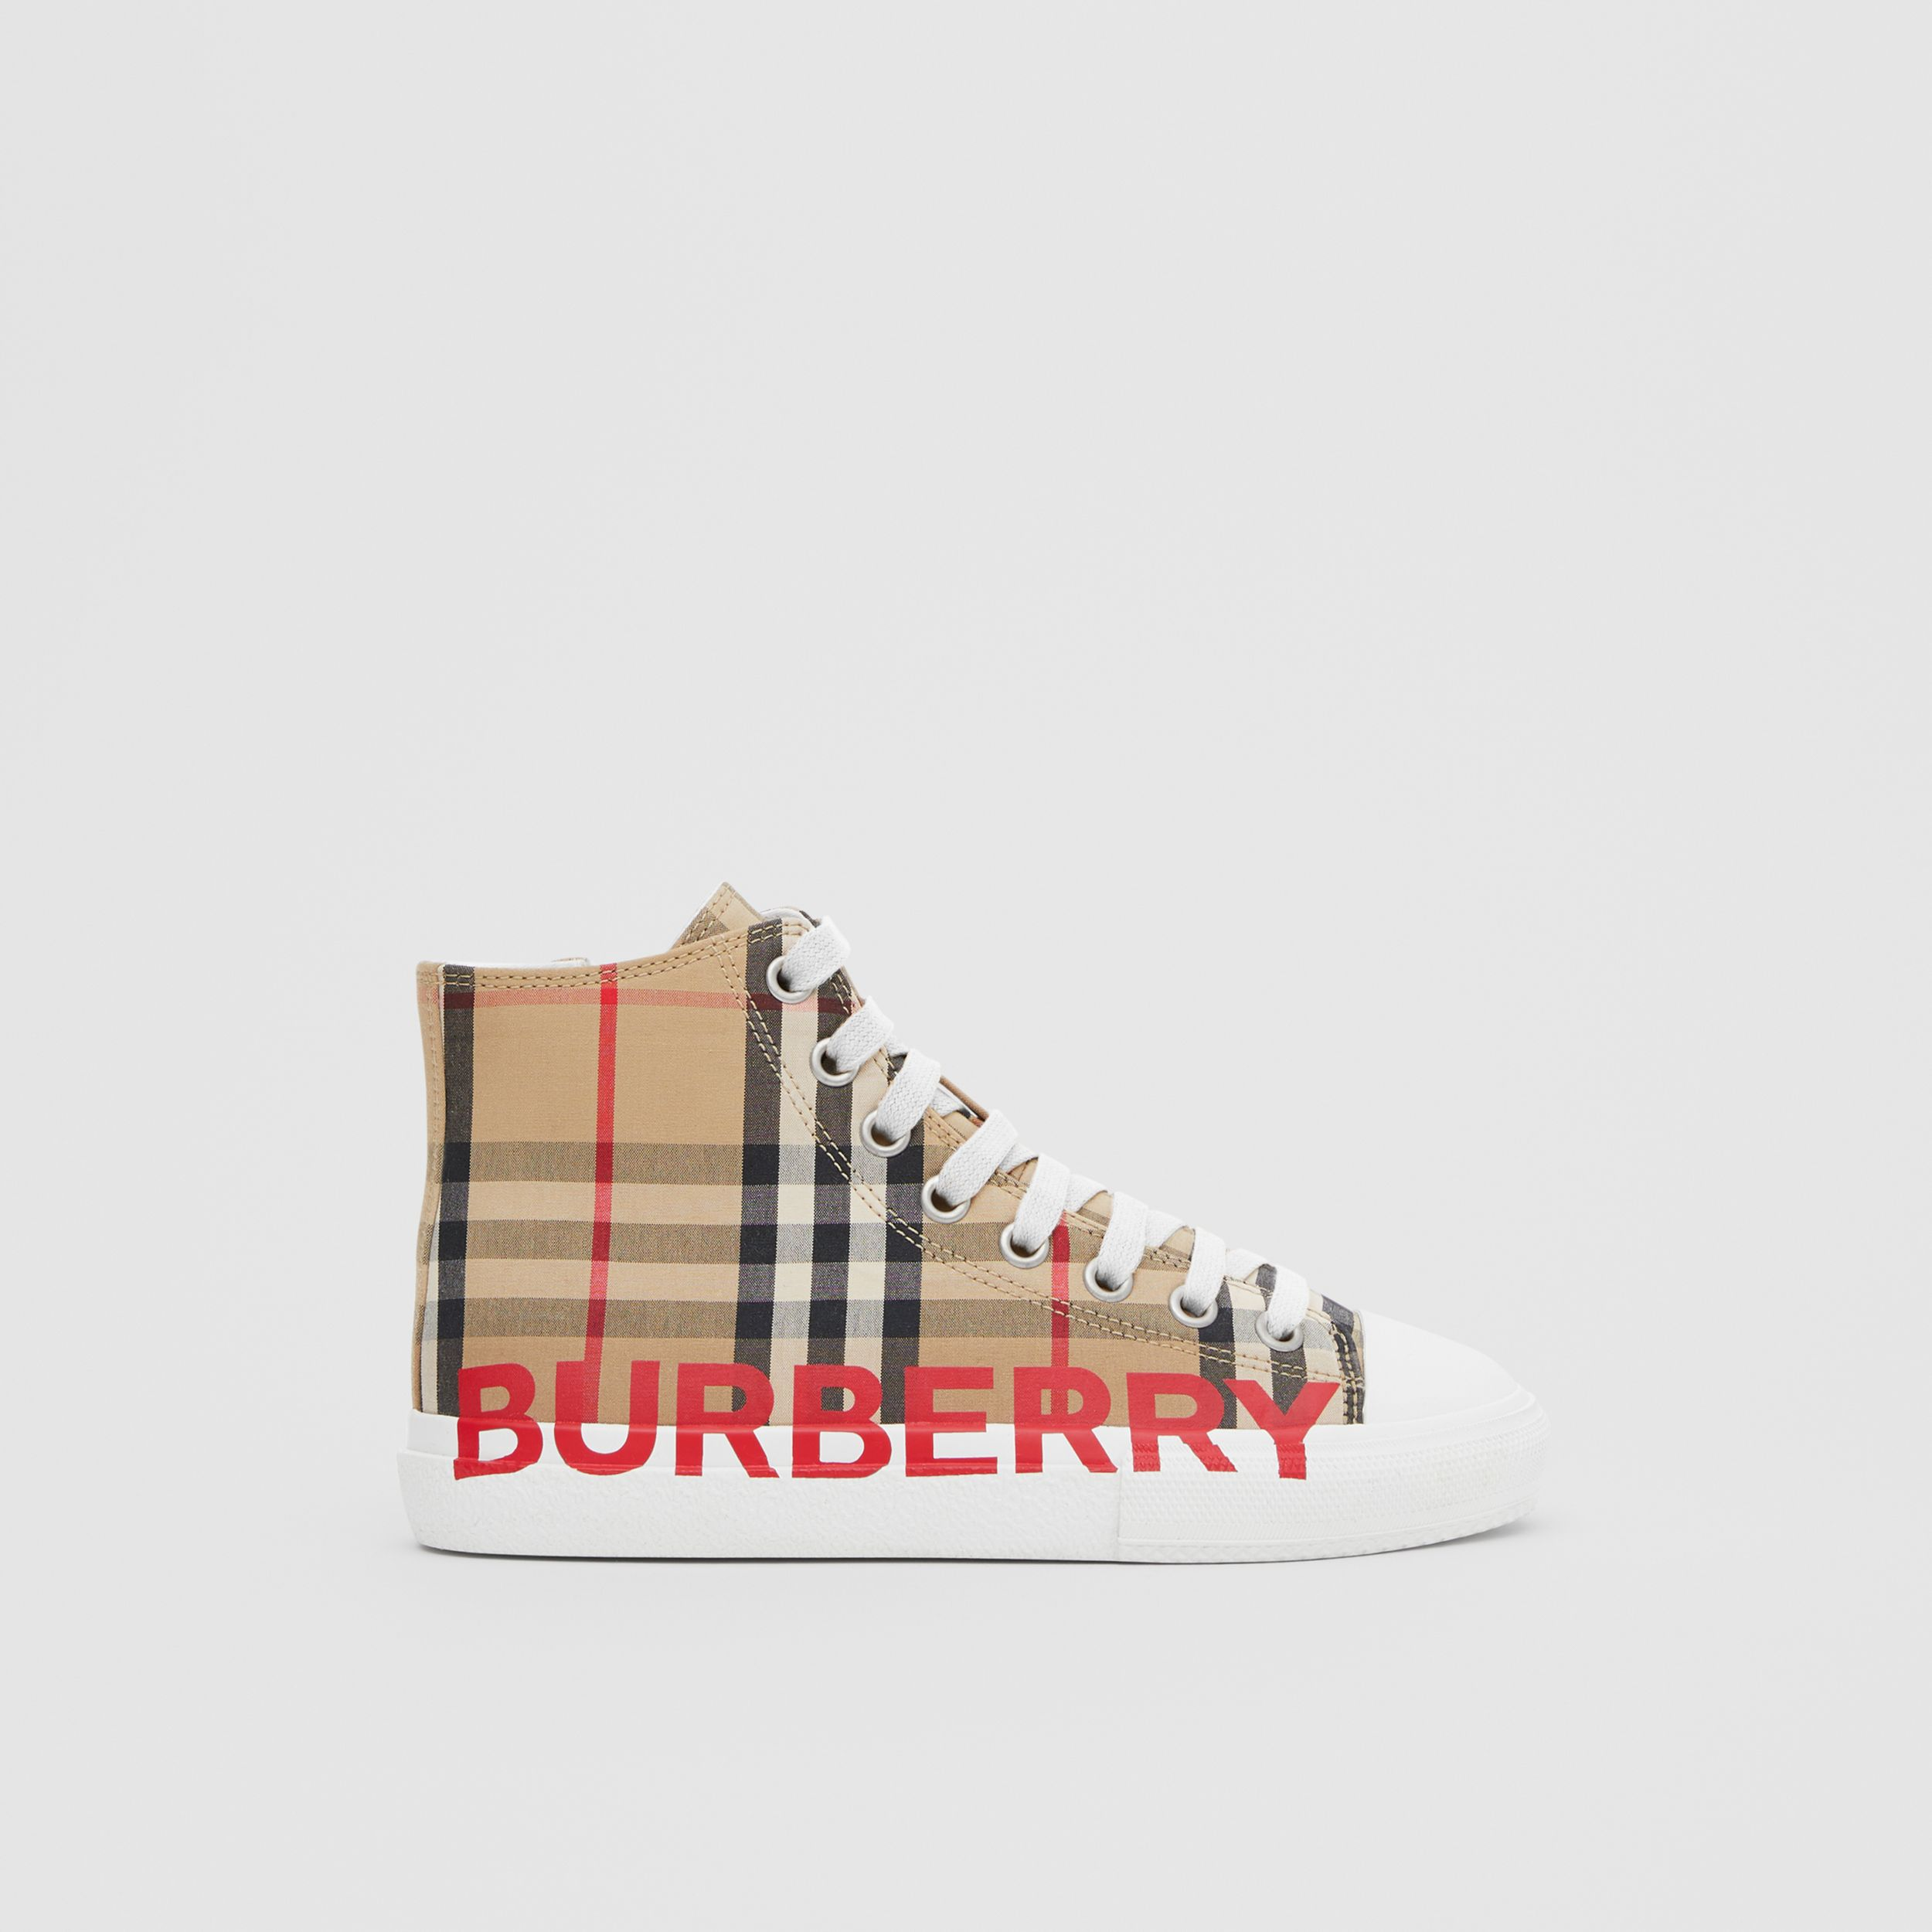 Logo Print Vintage Check High-top Sneakers in Archive Beige - Children | Burberry - 4